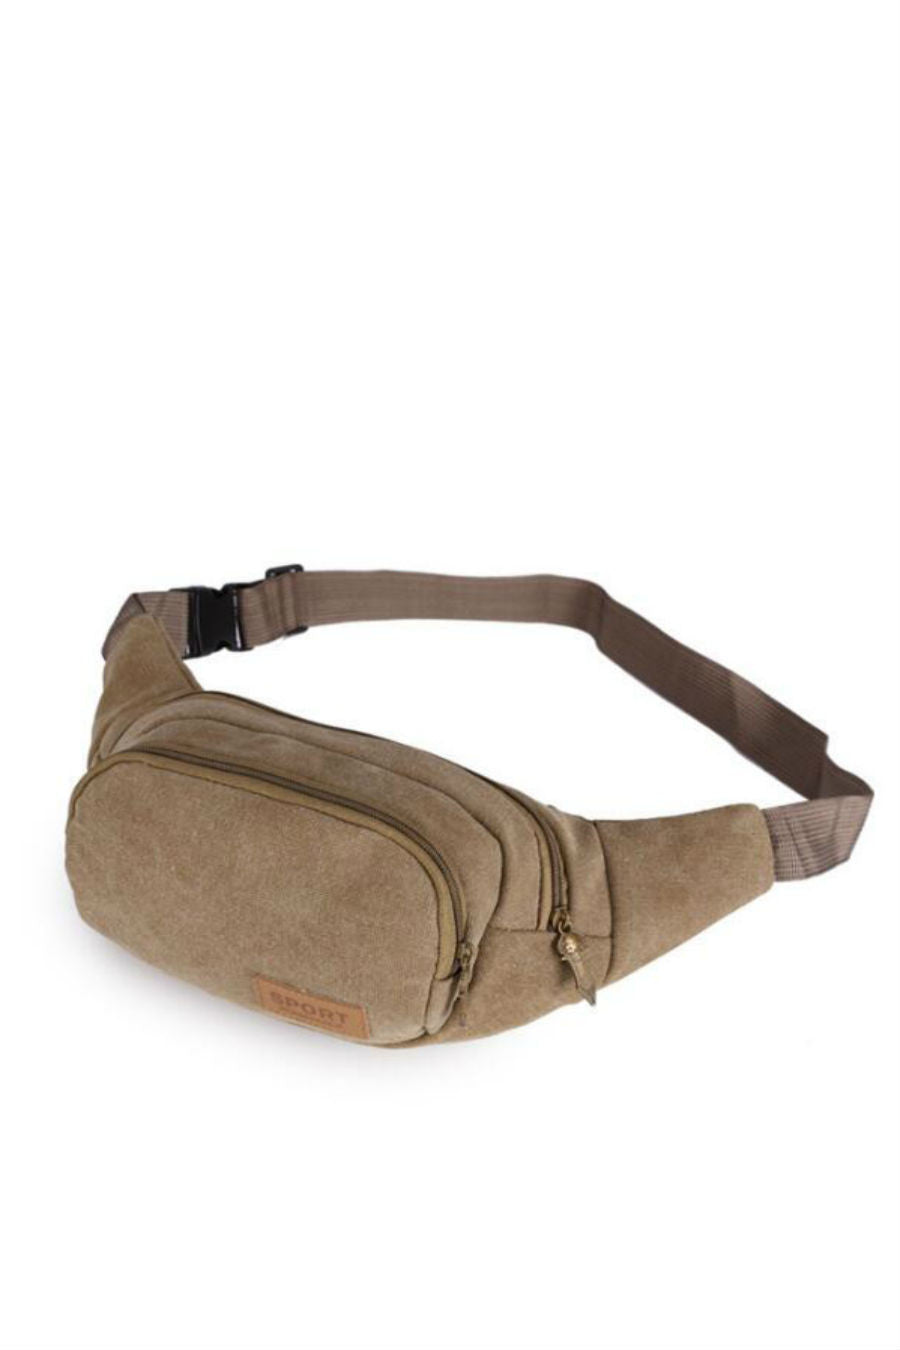 Men Classic Canvas Waist Bag